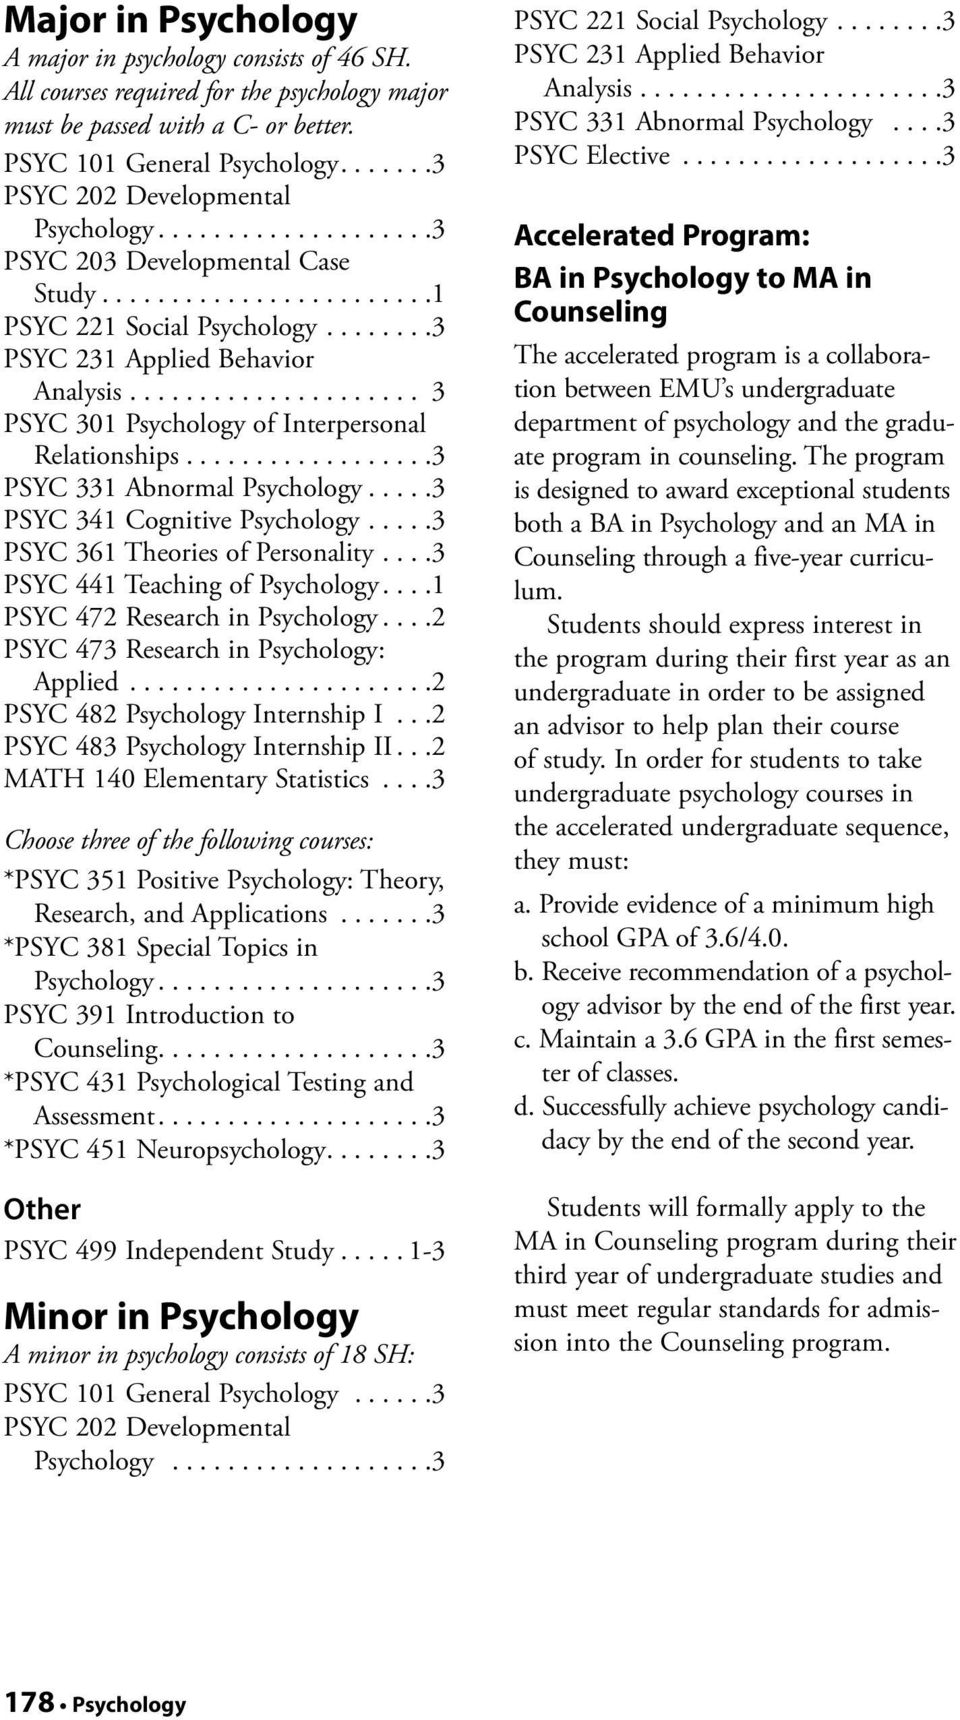 ..3 PSYC 331 Abnormal Psychology...3 PSYC 341 Cognitive Psychology...3 PSYC 361 Theories of Personality...3 PSYC 441 Teaching of Psychology...1 PSYC 472 Research in Psychology.